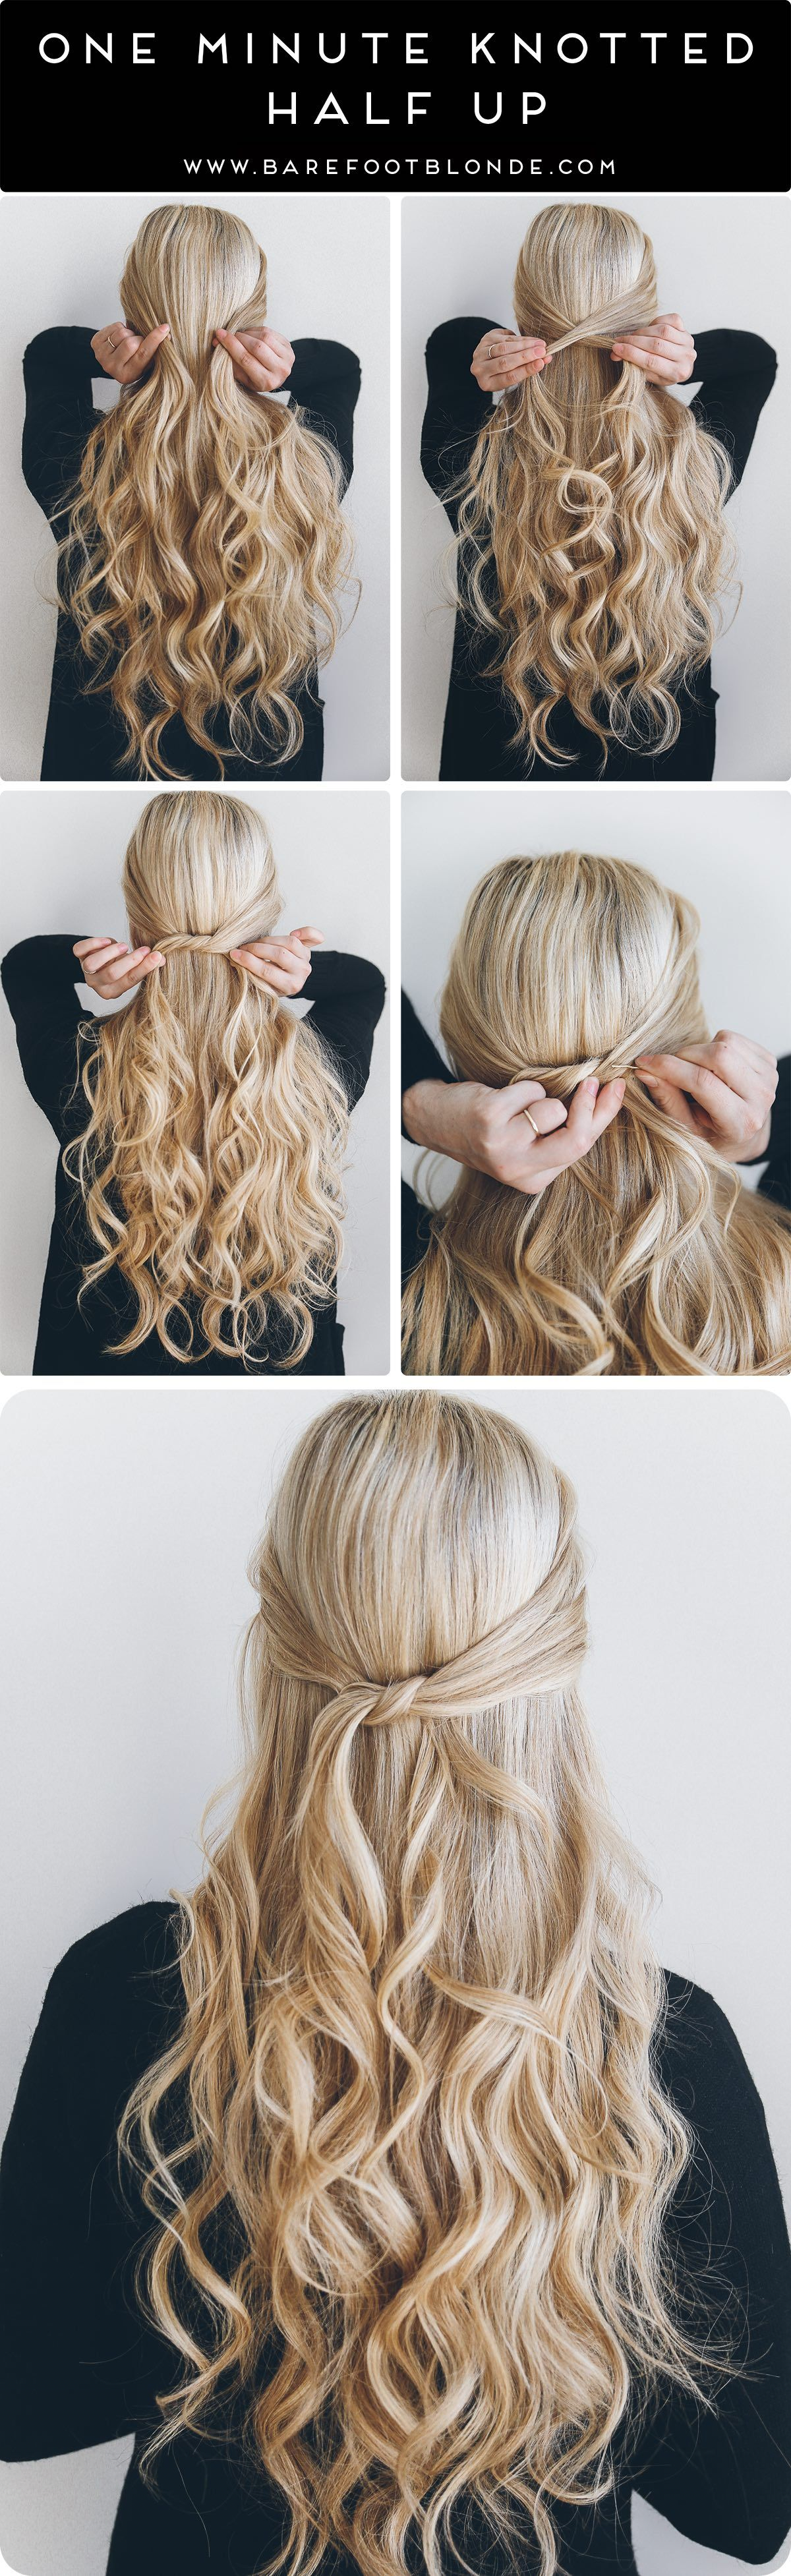 Barefoot blonde one minute knotted half up hairstyles pinterest